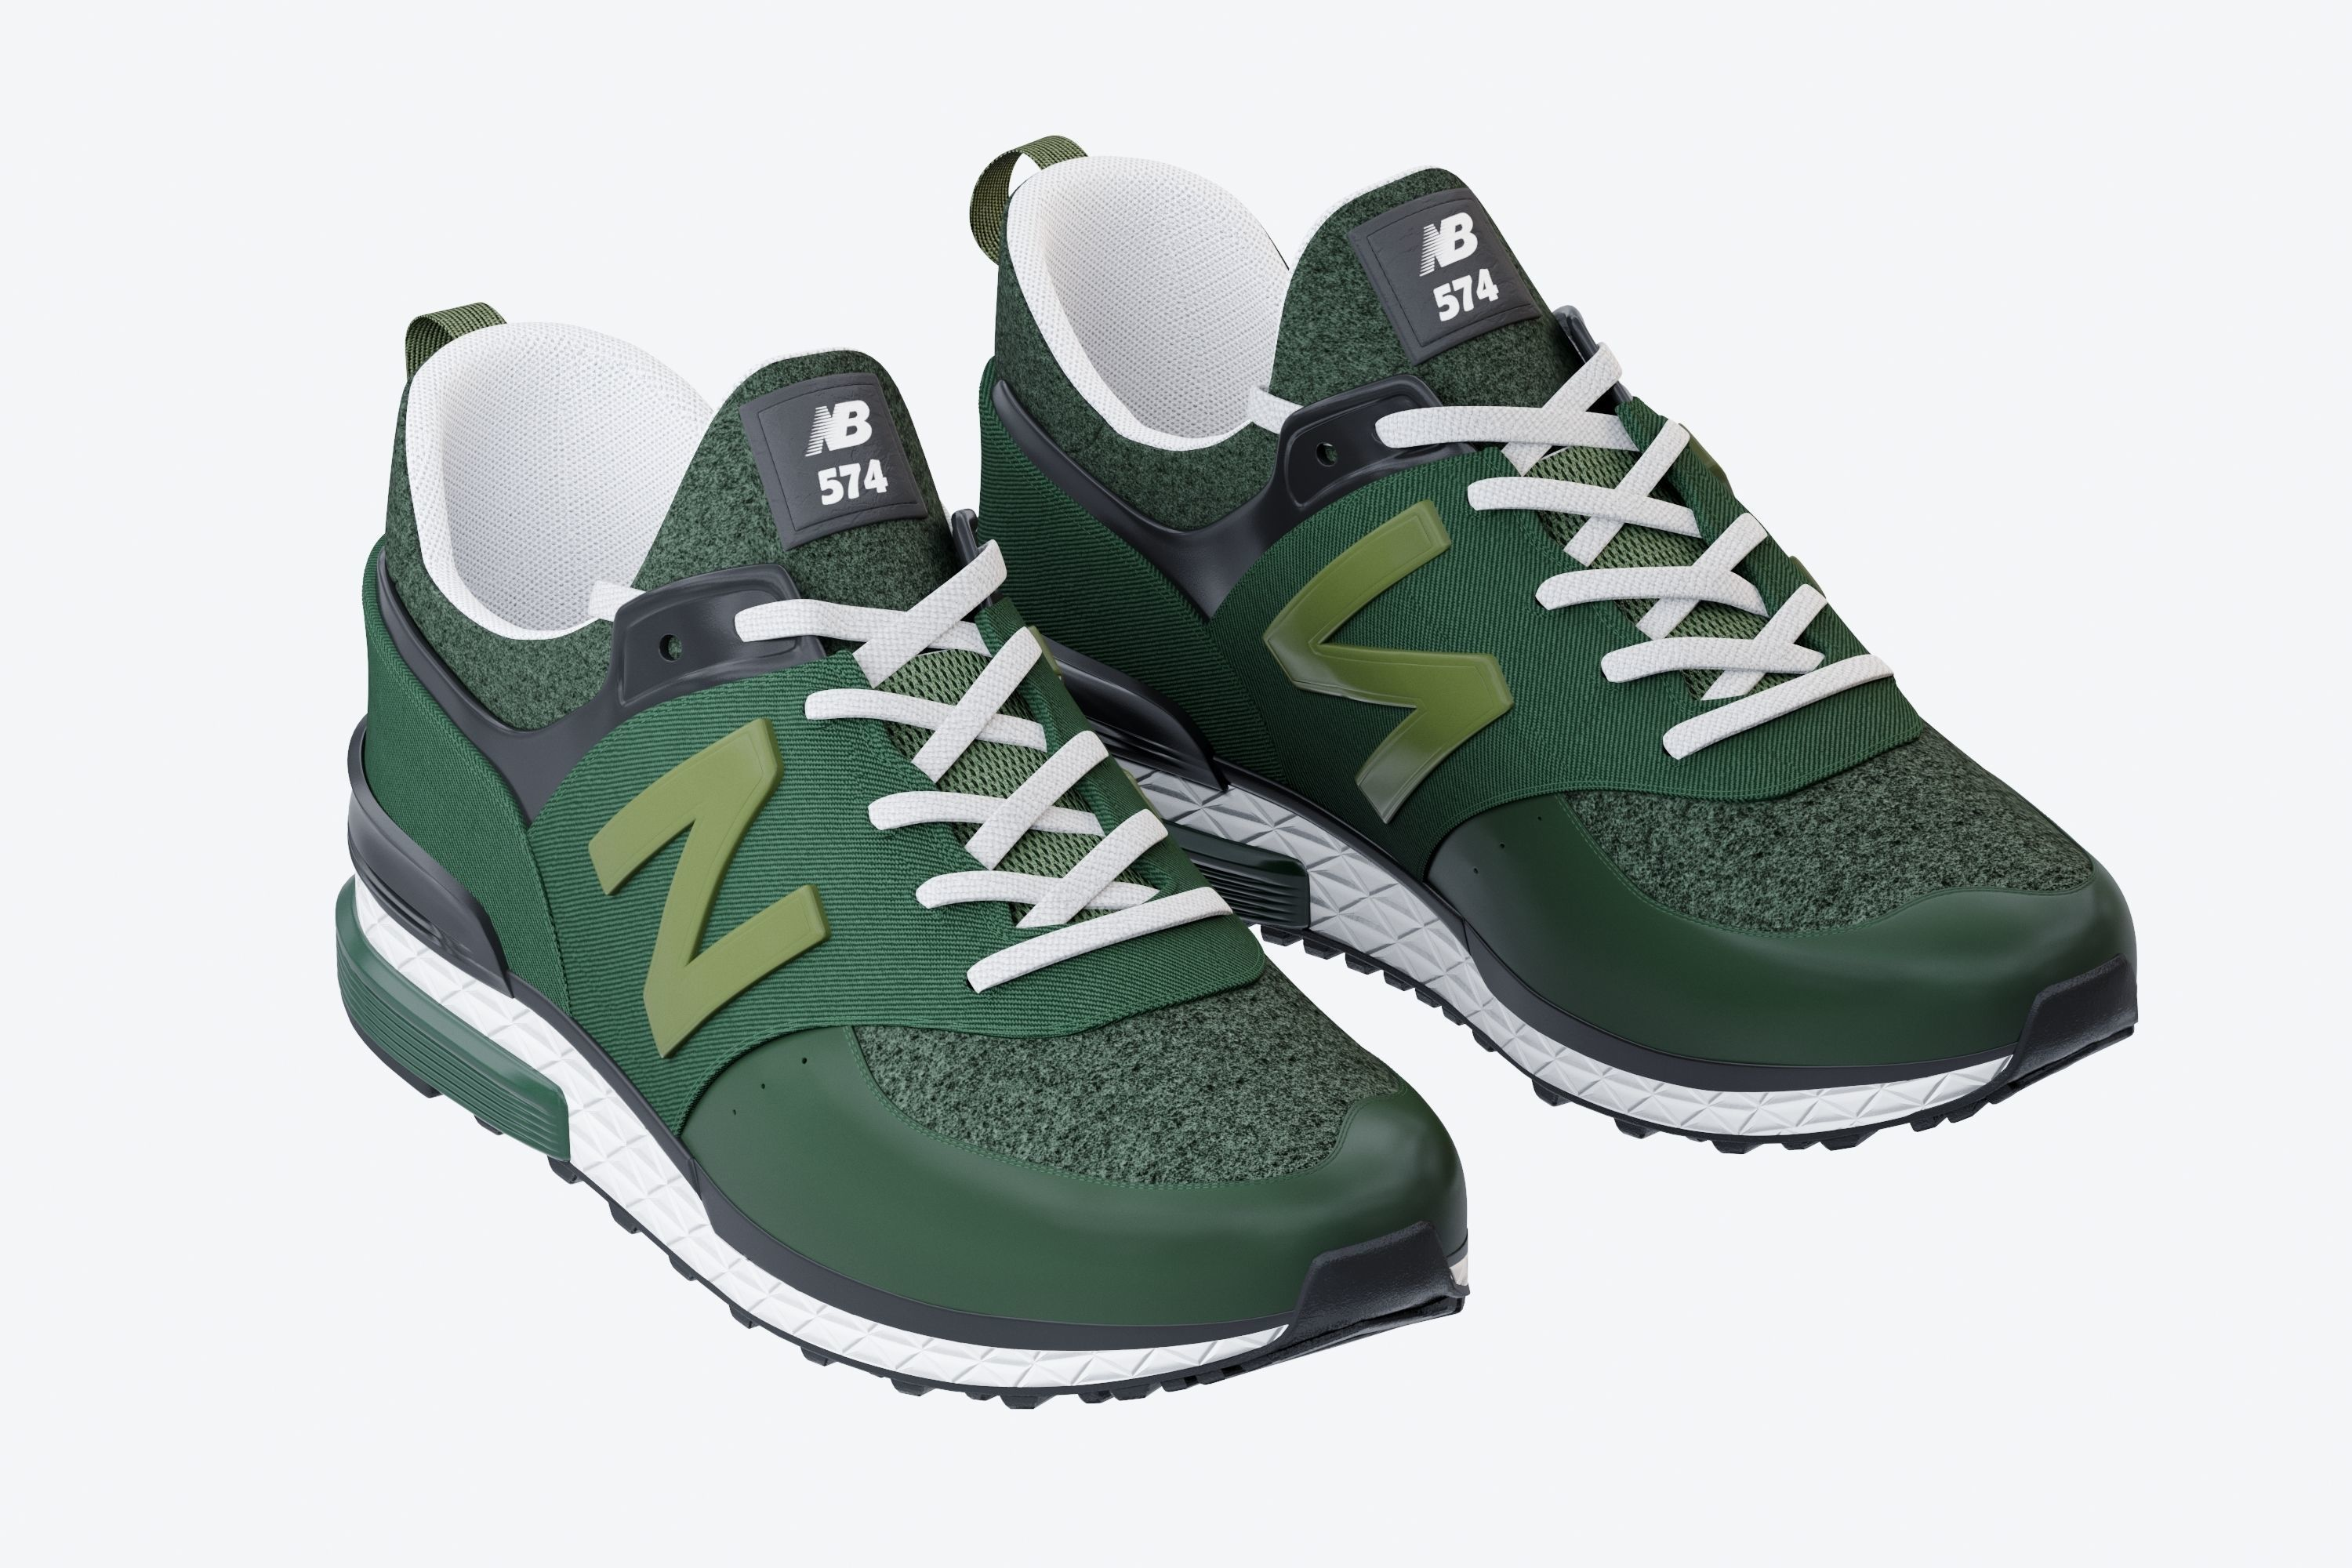 on sale 2a292 9932b New Balance Era 574 Sport | 3D model